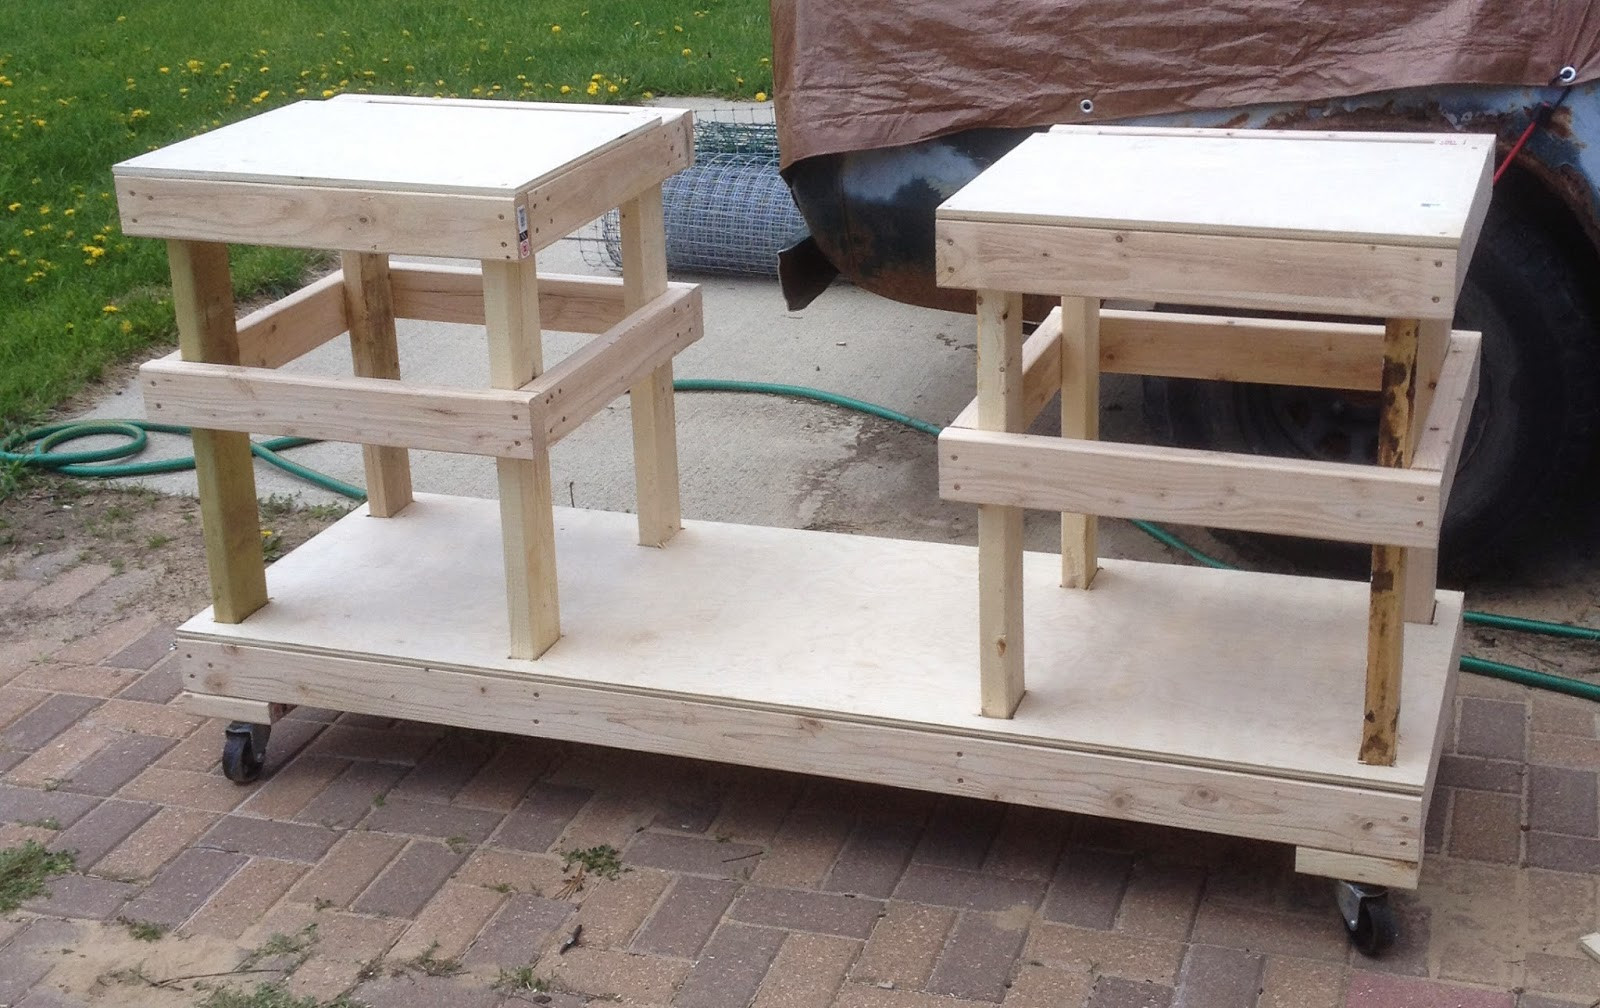 Best ideas about DIY Table Saw Plans . Save or Pin DIY Table Saw Stand on Casters Now.